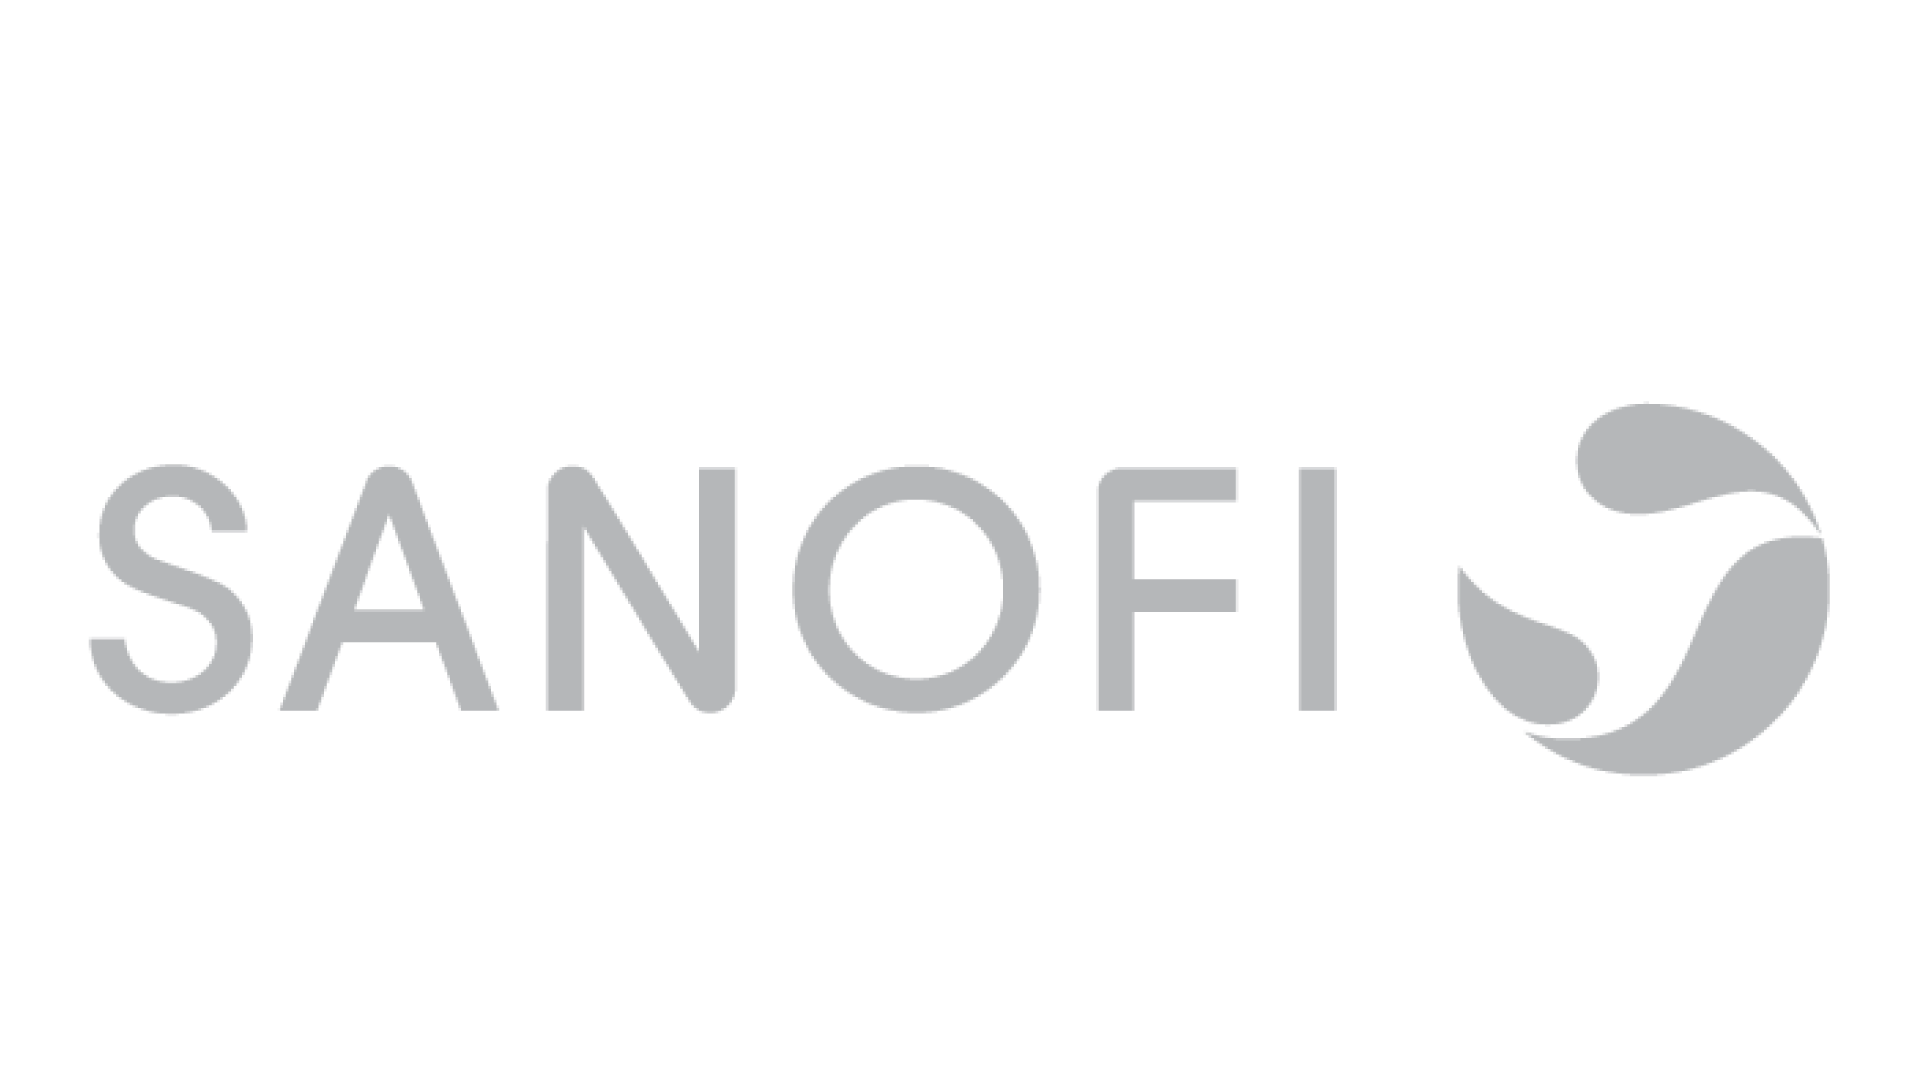 Sanofi a global biopharmaceutical company is one of the many organisations People Builders has as client.